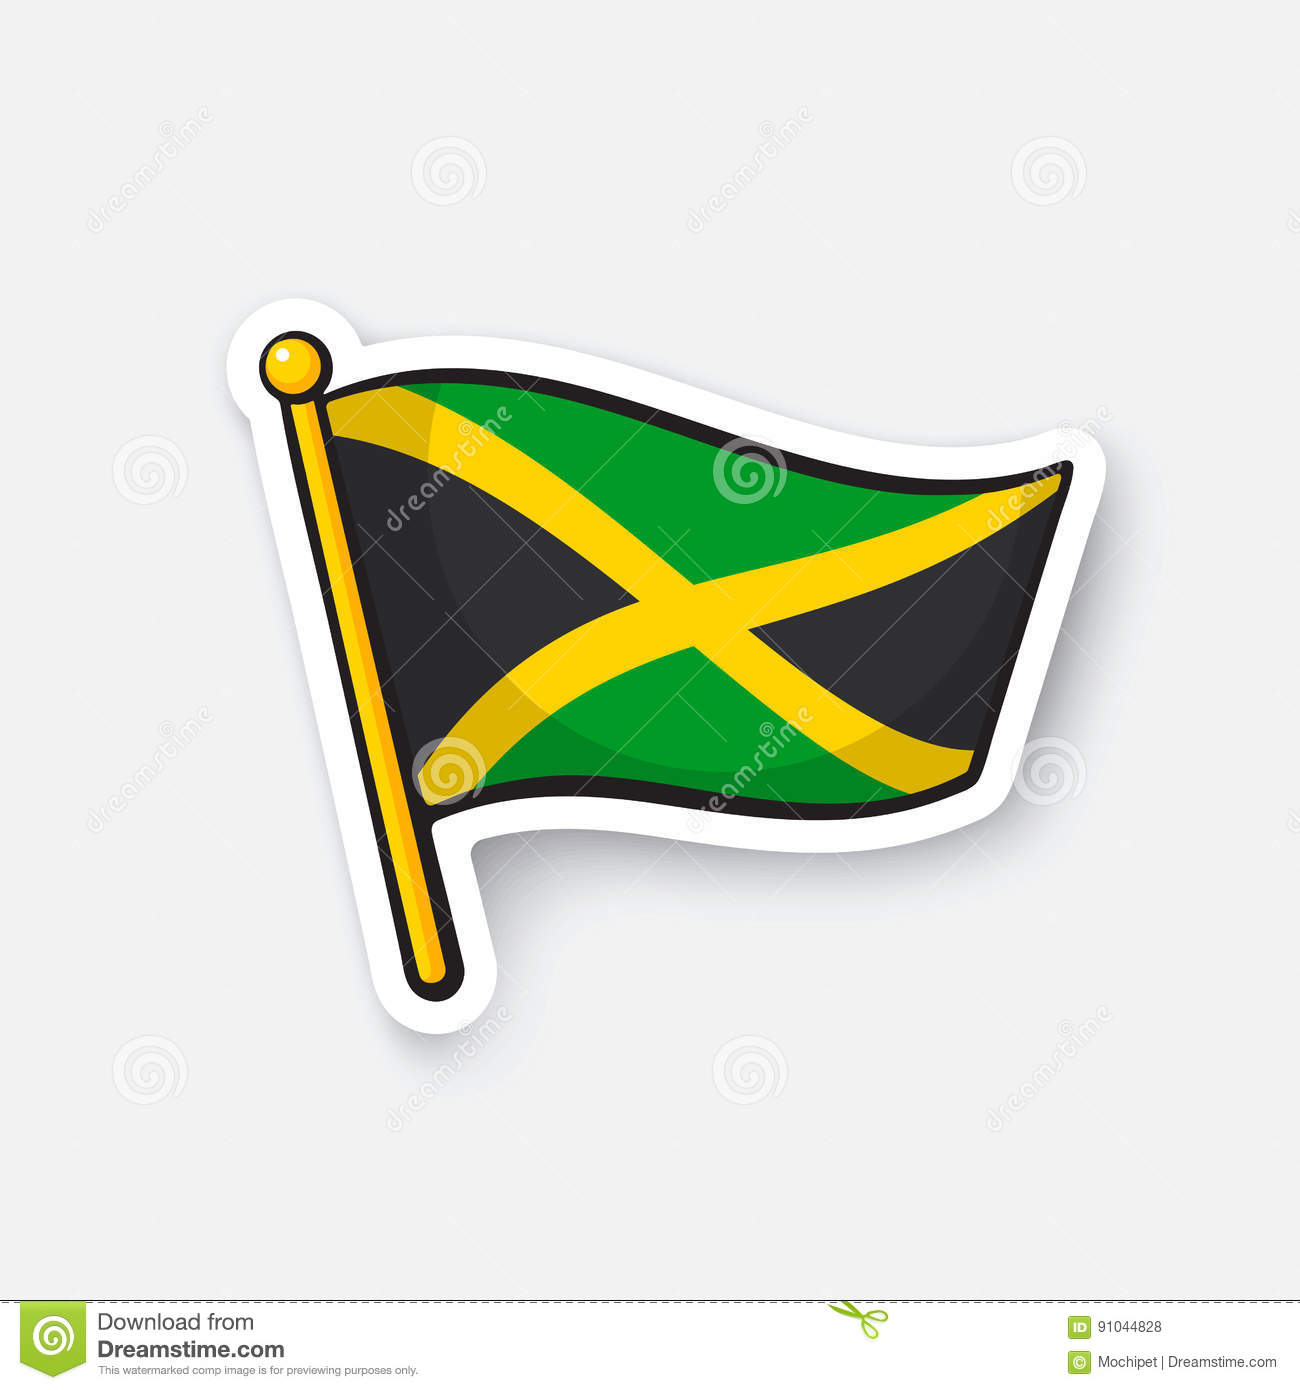 Download sticker national flag of jamaica stock vector illustration of graphic funny 91044828